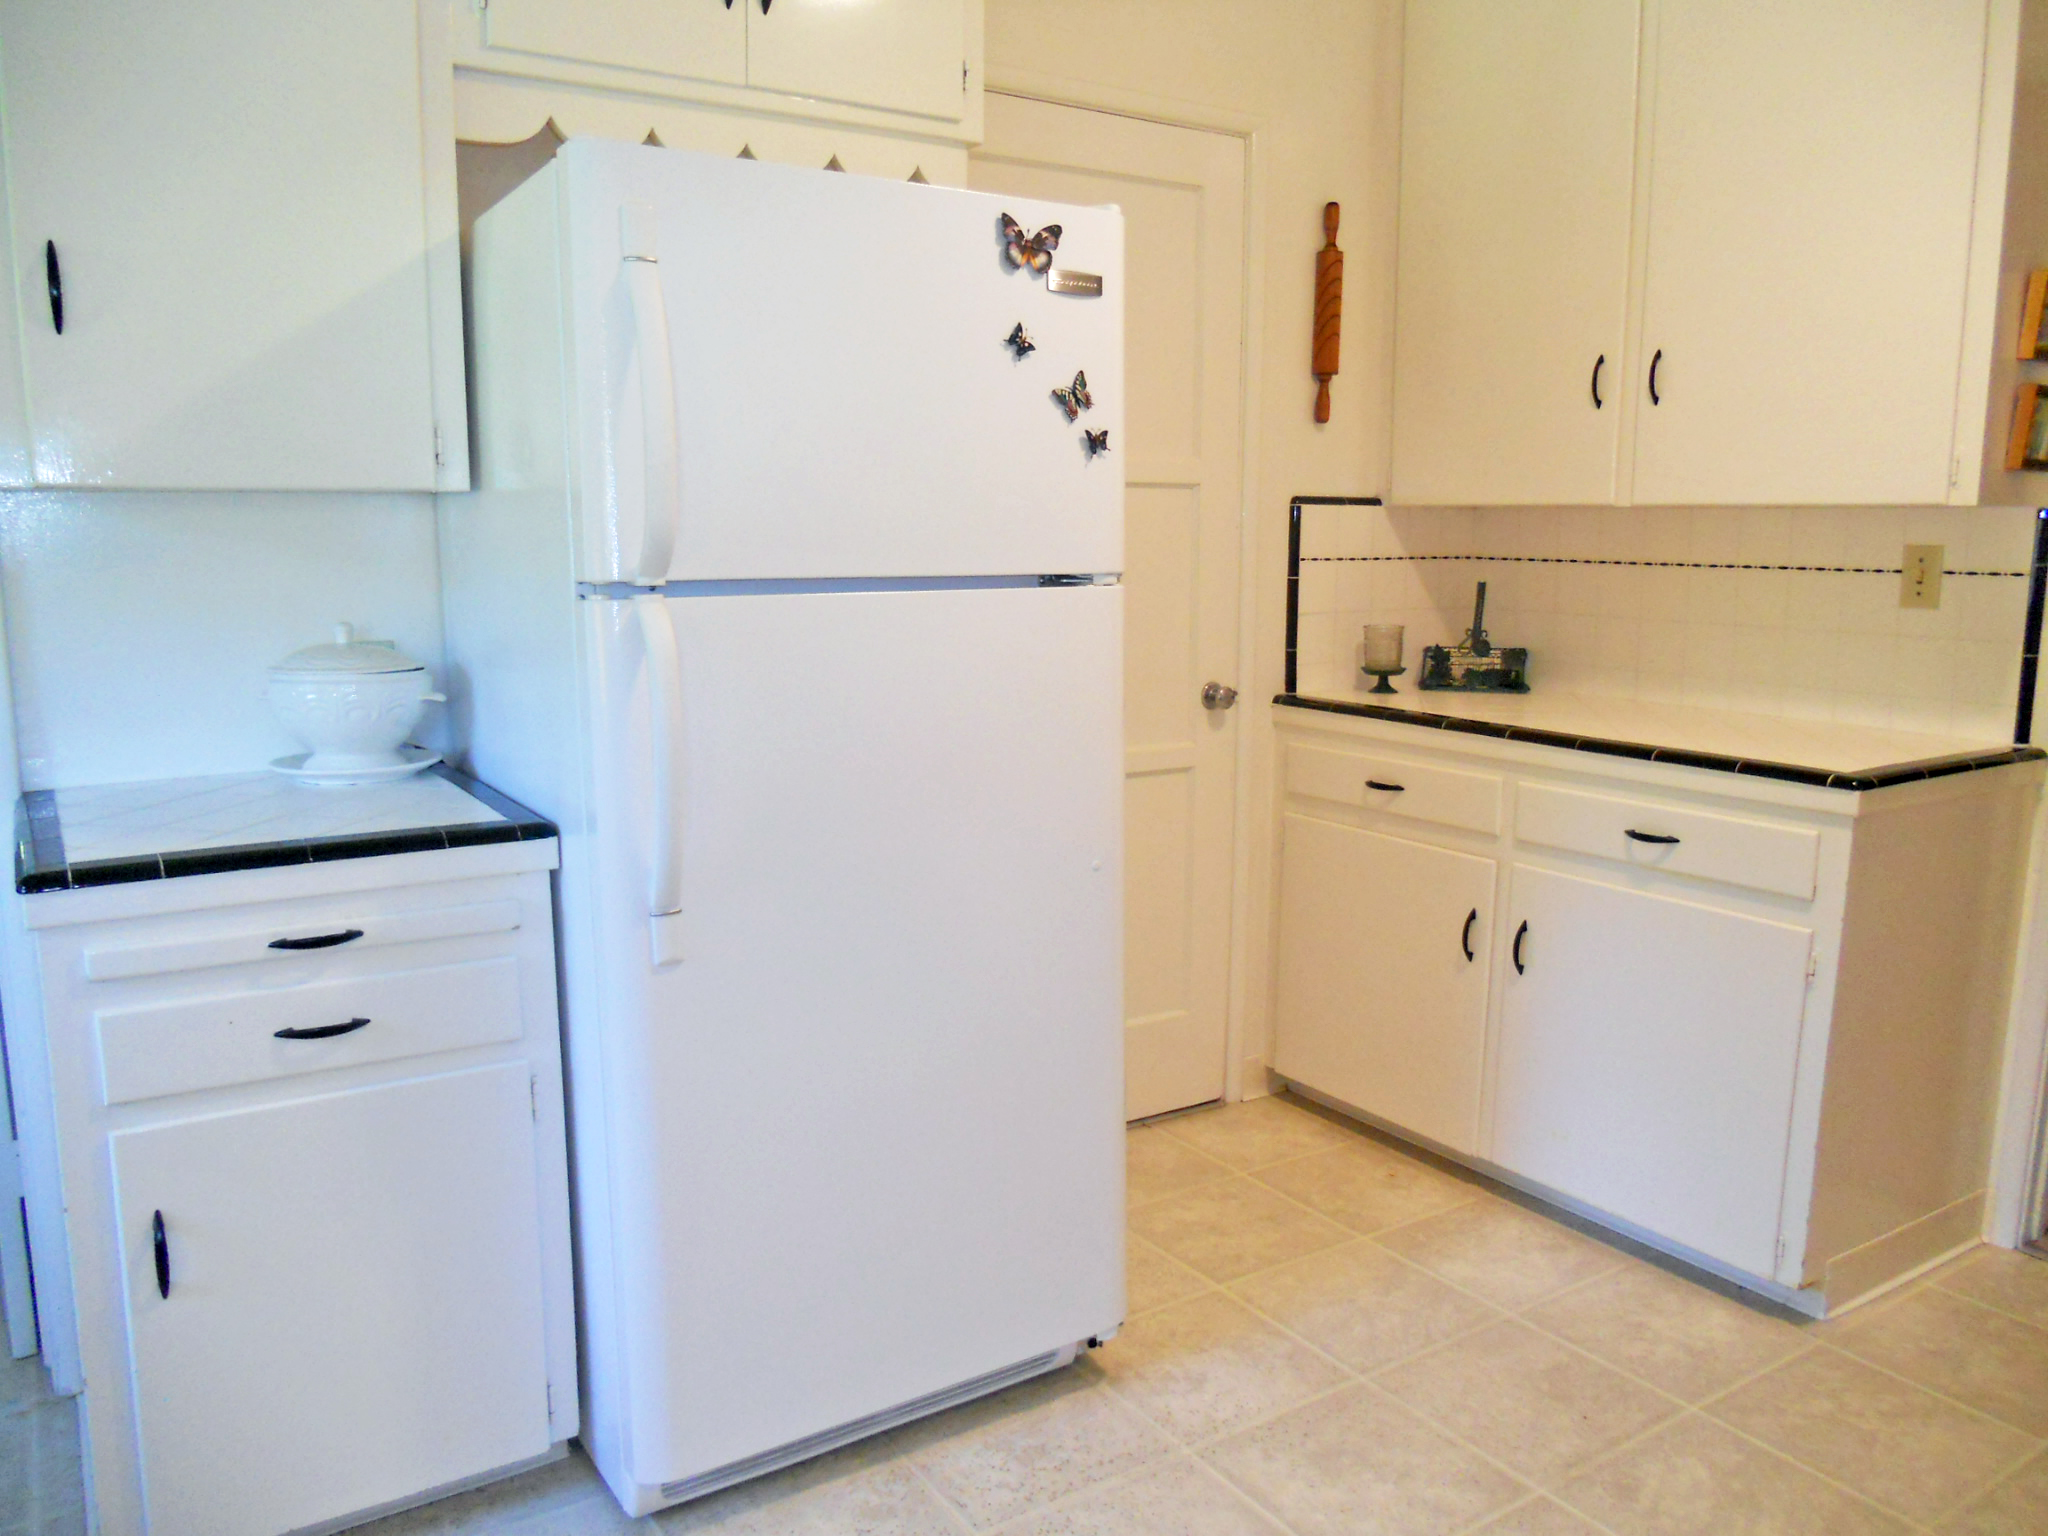 Alternate view of kitchen with more cabinetry.  The refrigerator is inluded!